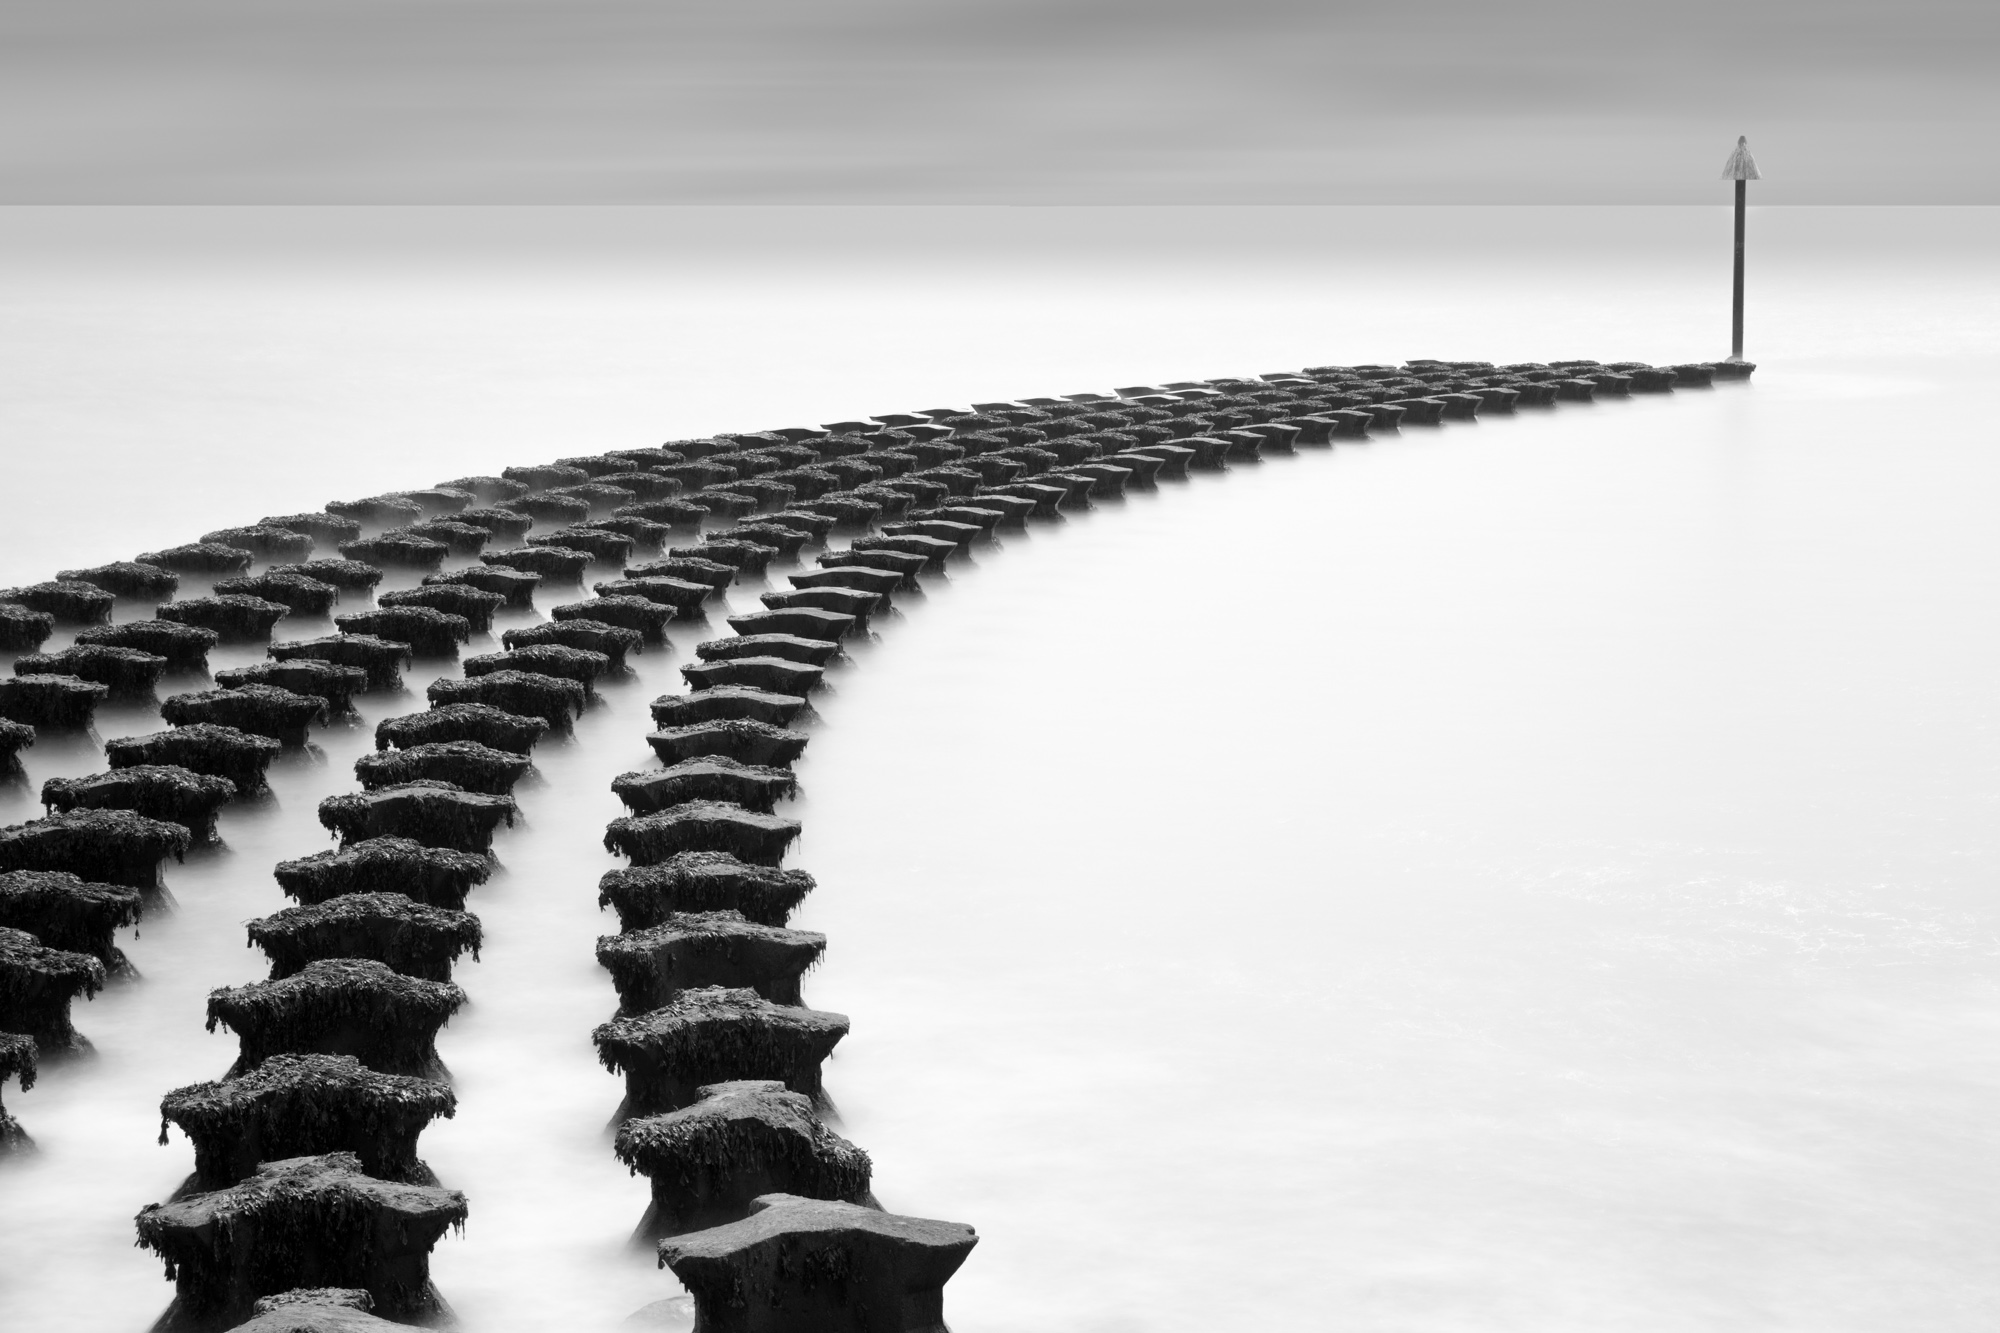 minimal long exposure photograph of an arch of groins in the ocean in the UK